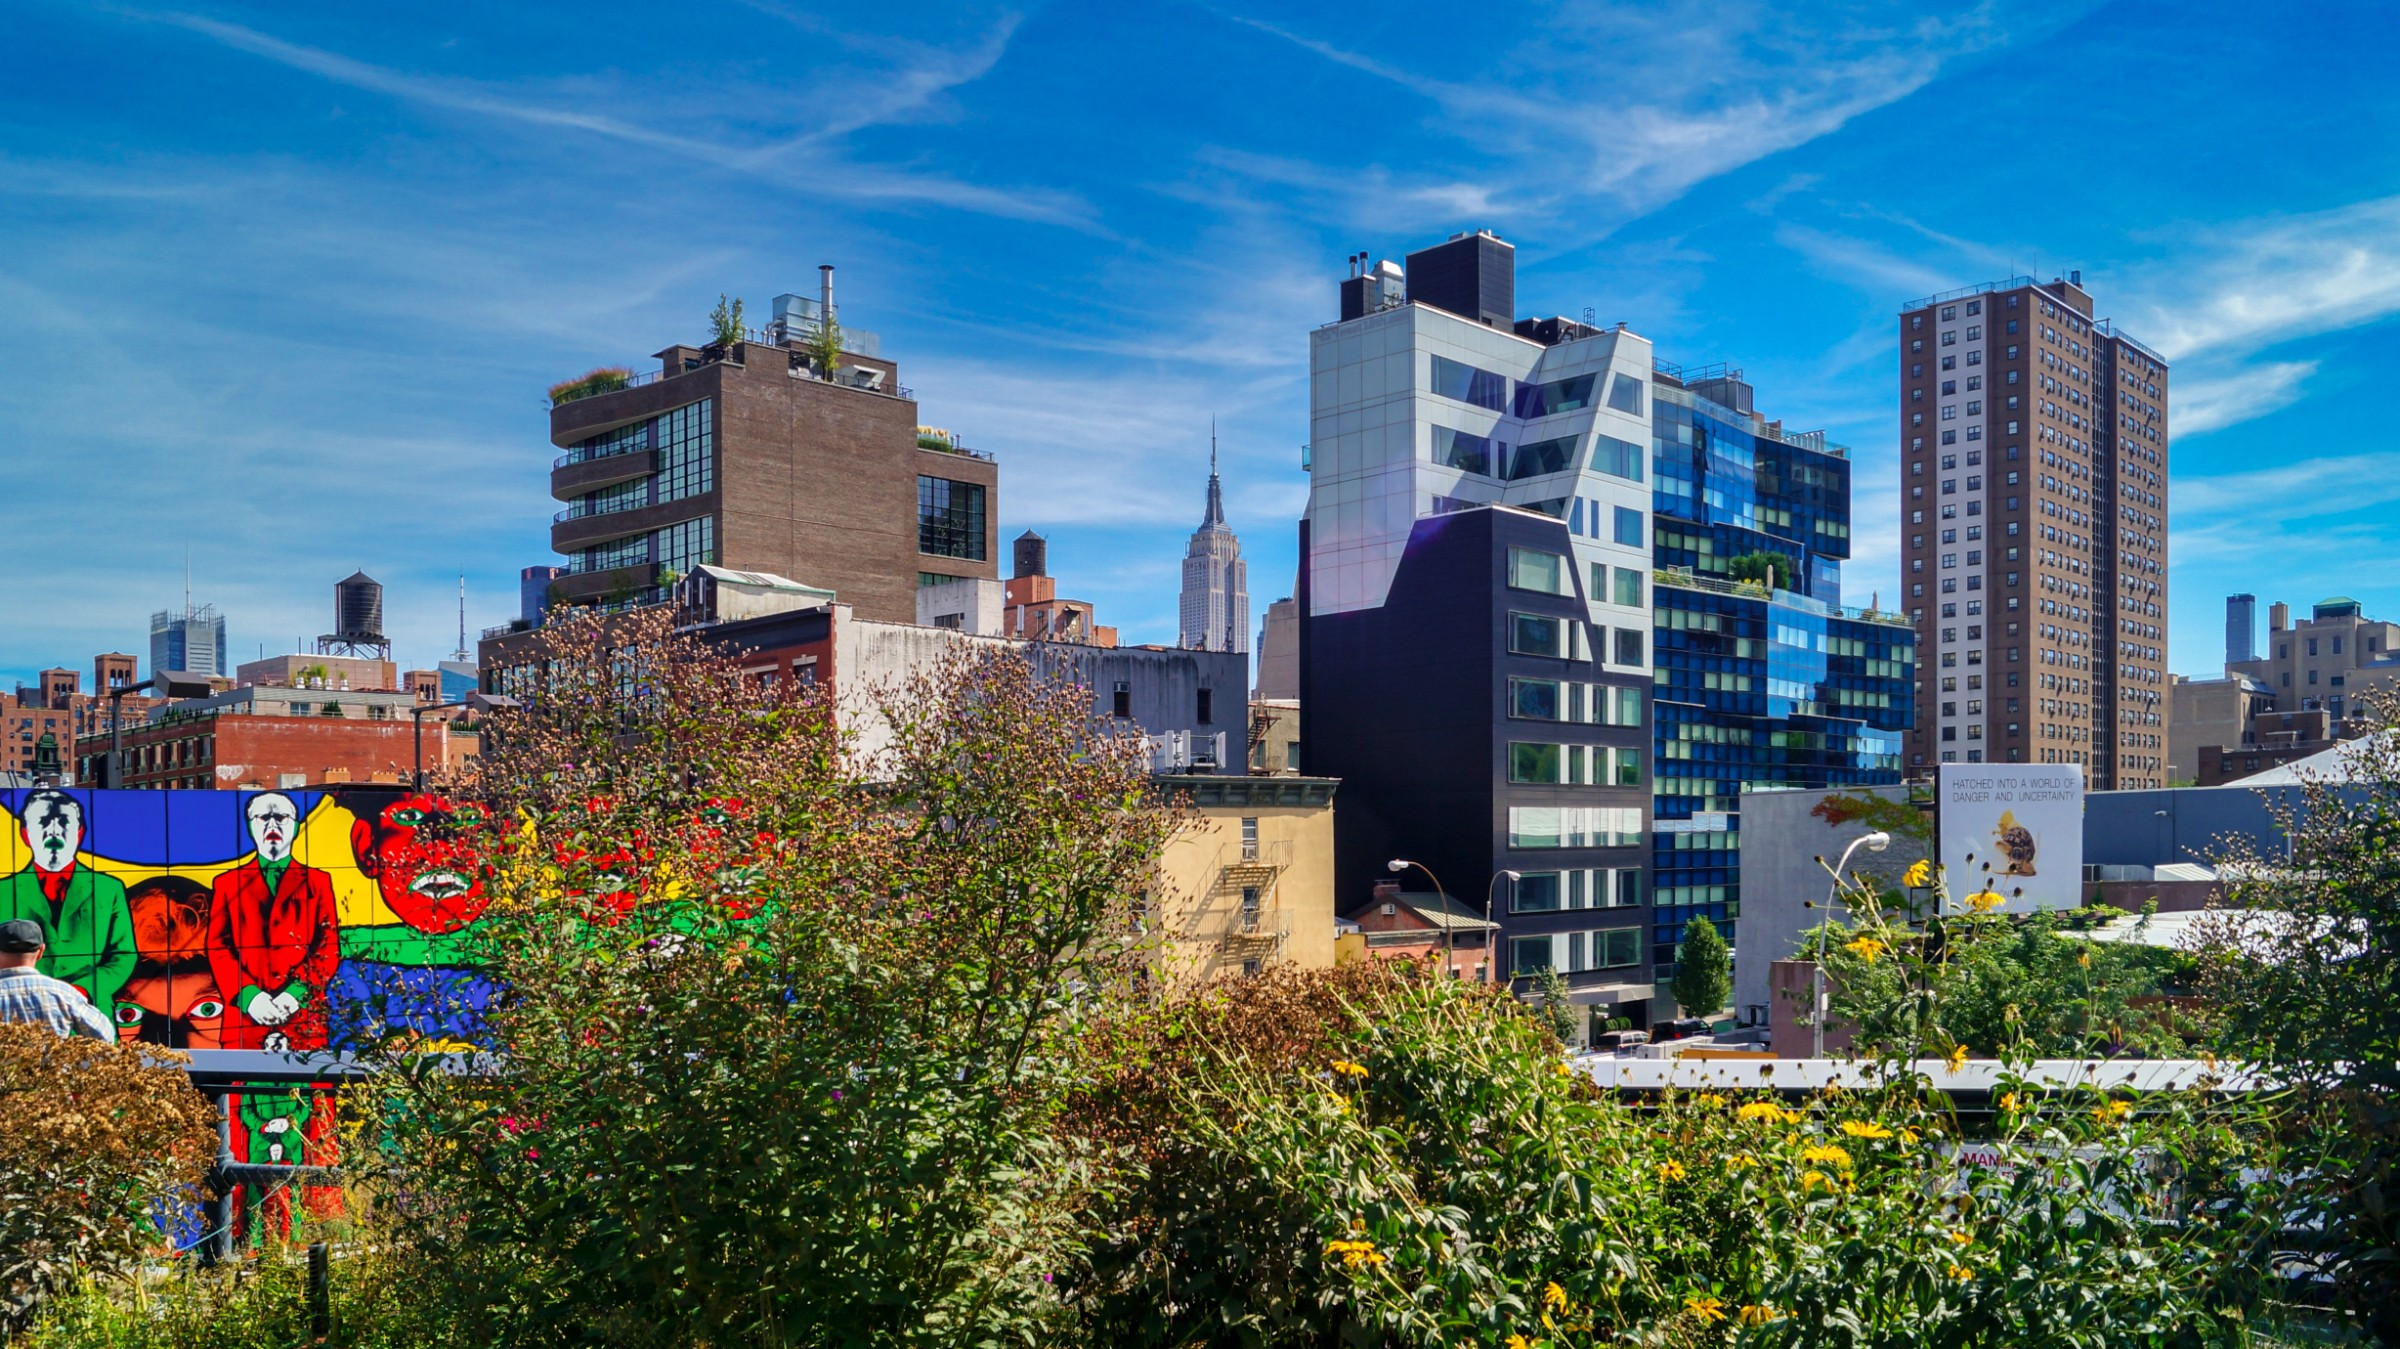 The High Line features many public art displays